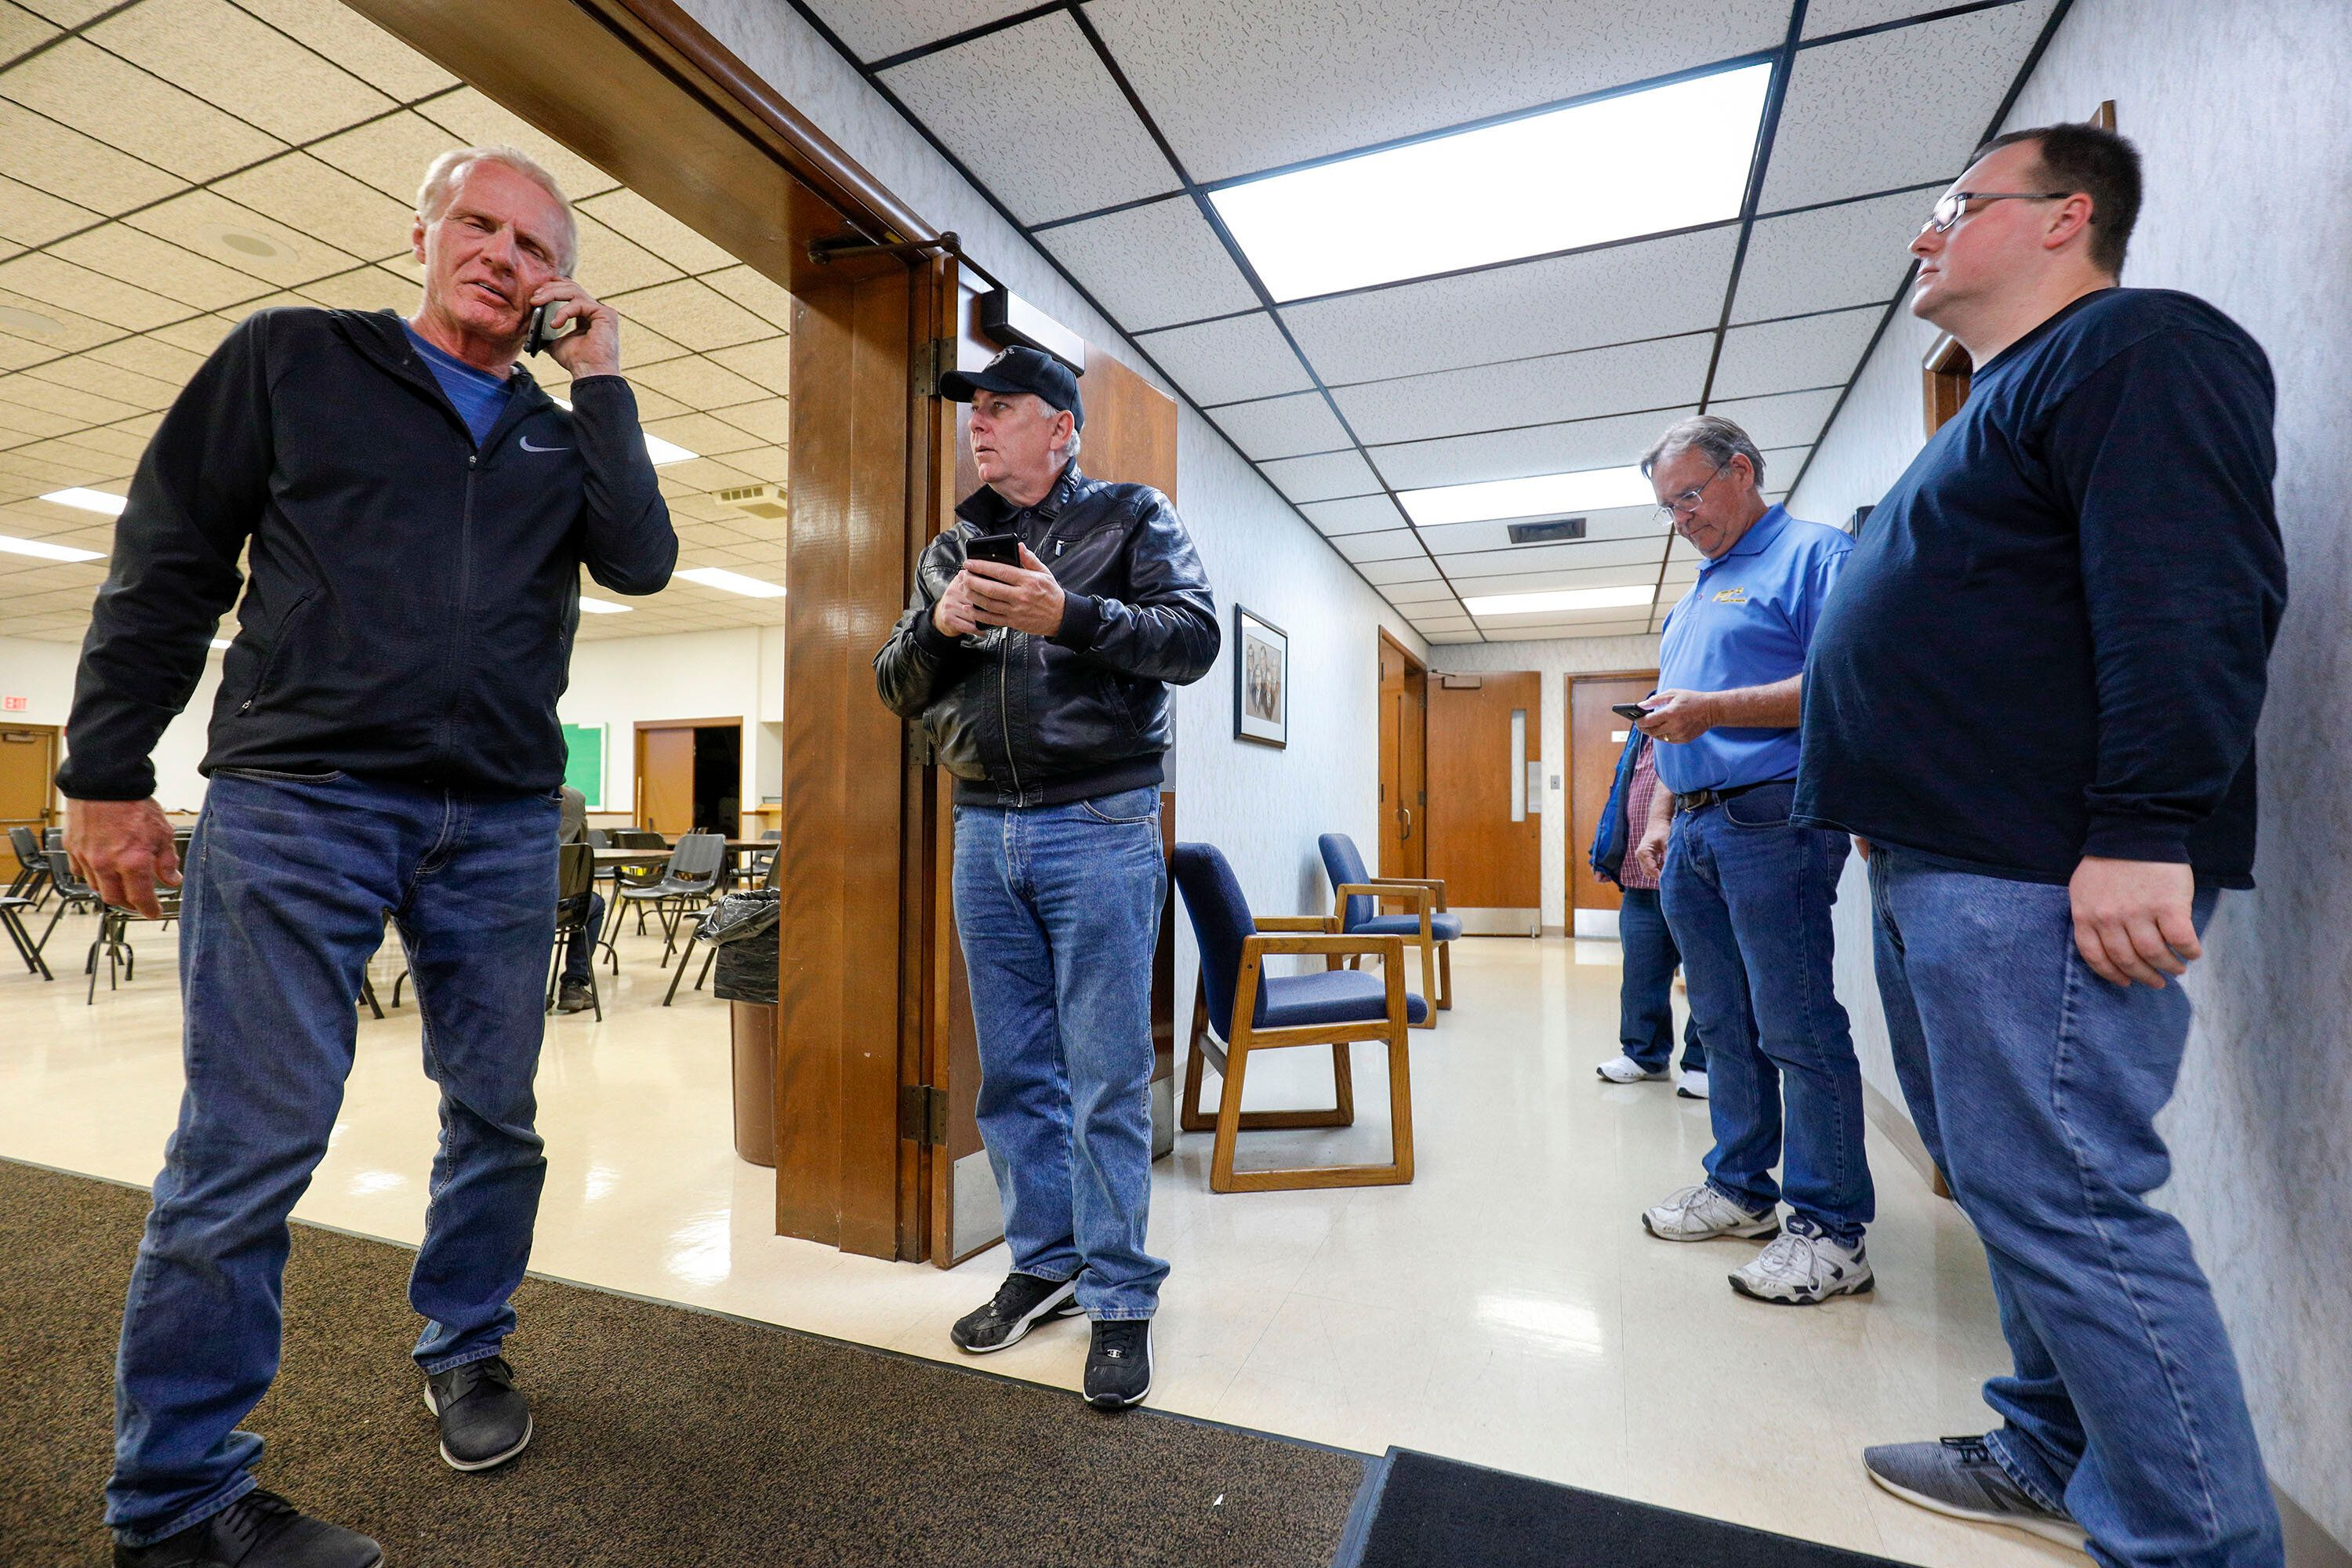 Officials of UAW Local 160 check their phones to get updates on the UAW-GM contract ratification vote count on Oct. 25, 2019